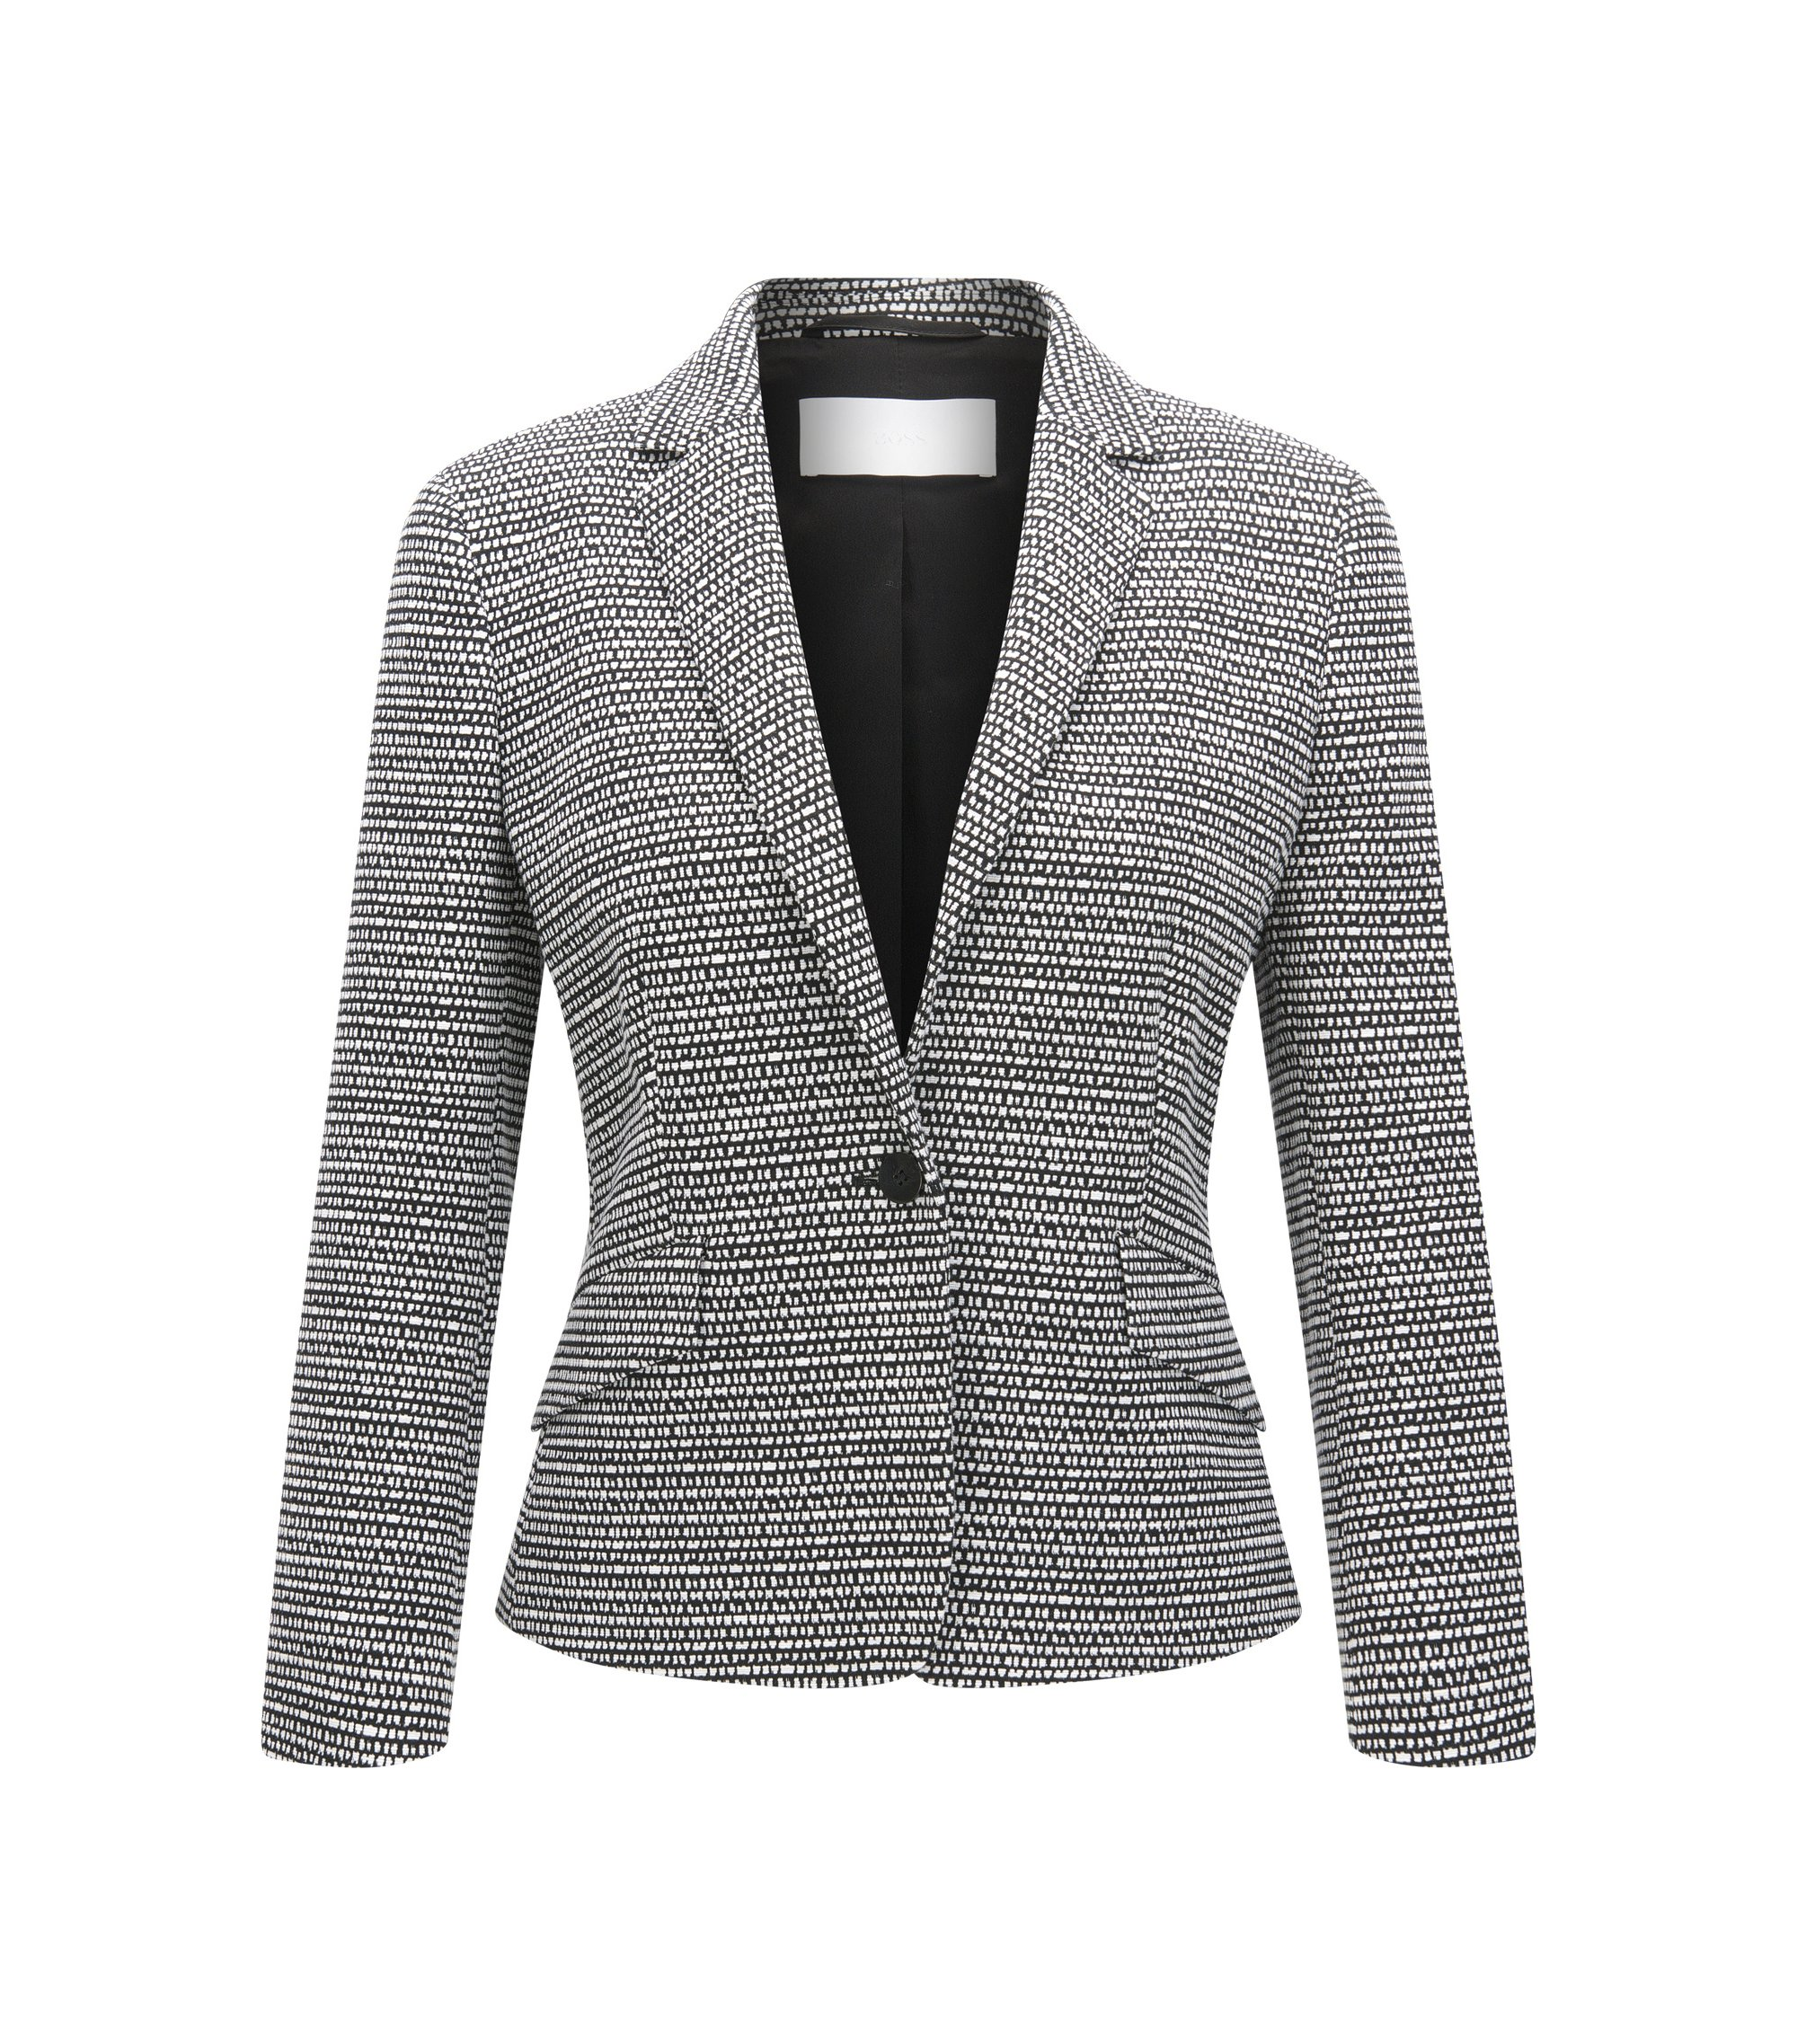 Regular-fit blazer in jacquard fabric, Patterned